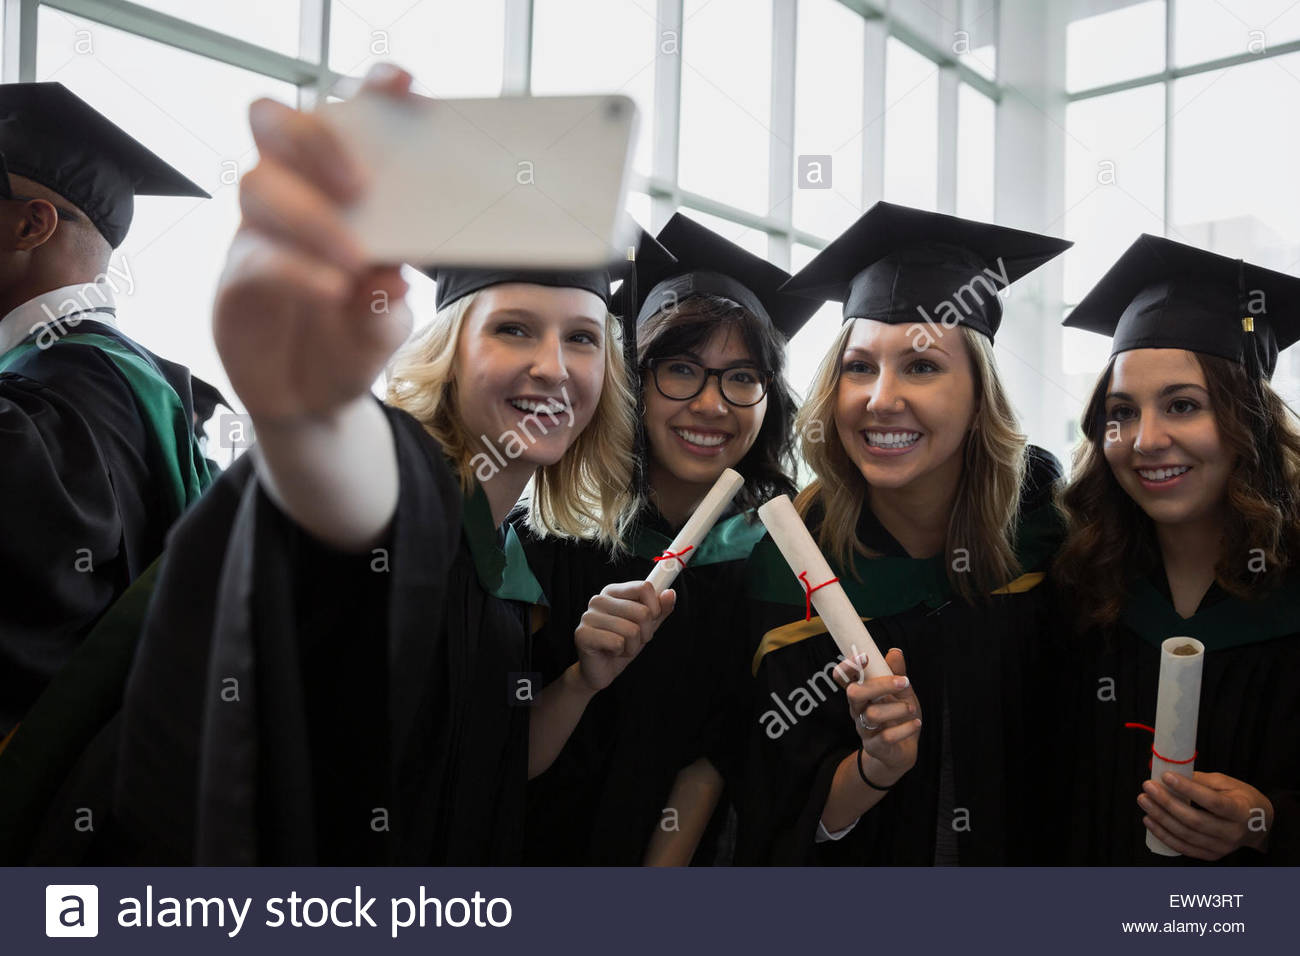 College graduates posing for selfie cap and gown - Stock Image